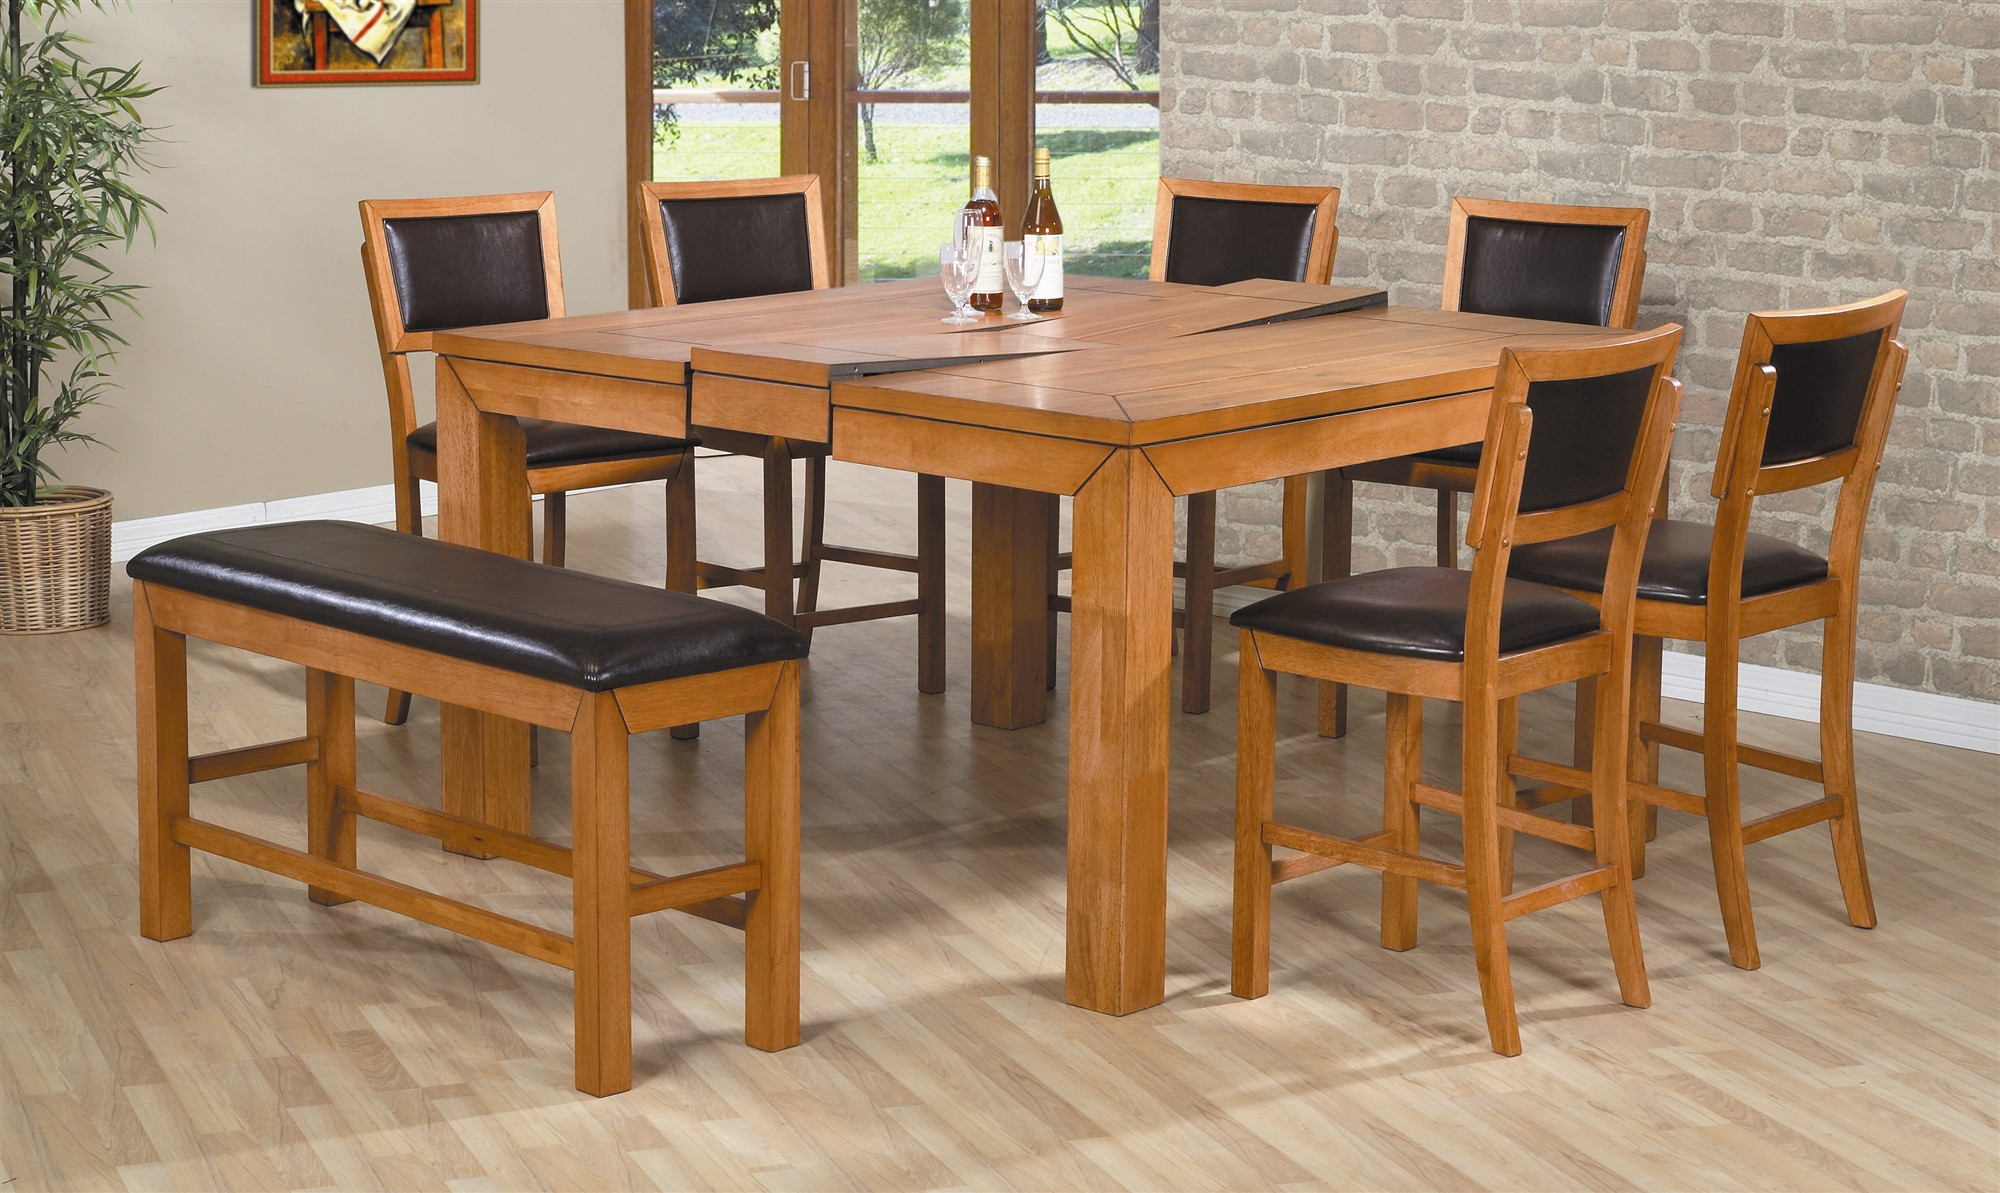 975ef2a9a821 Wooden Dining Room Table And Chairs In Hardwood Floor Room